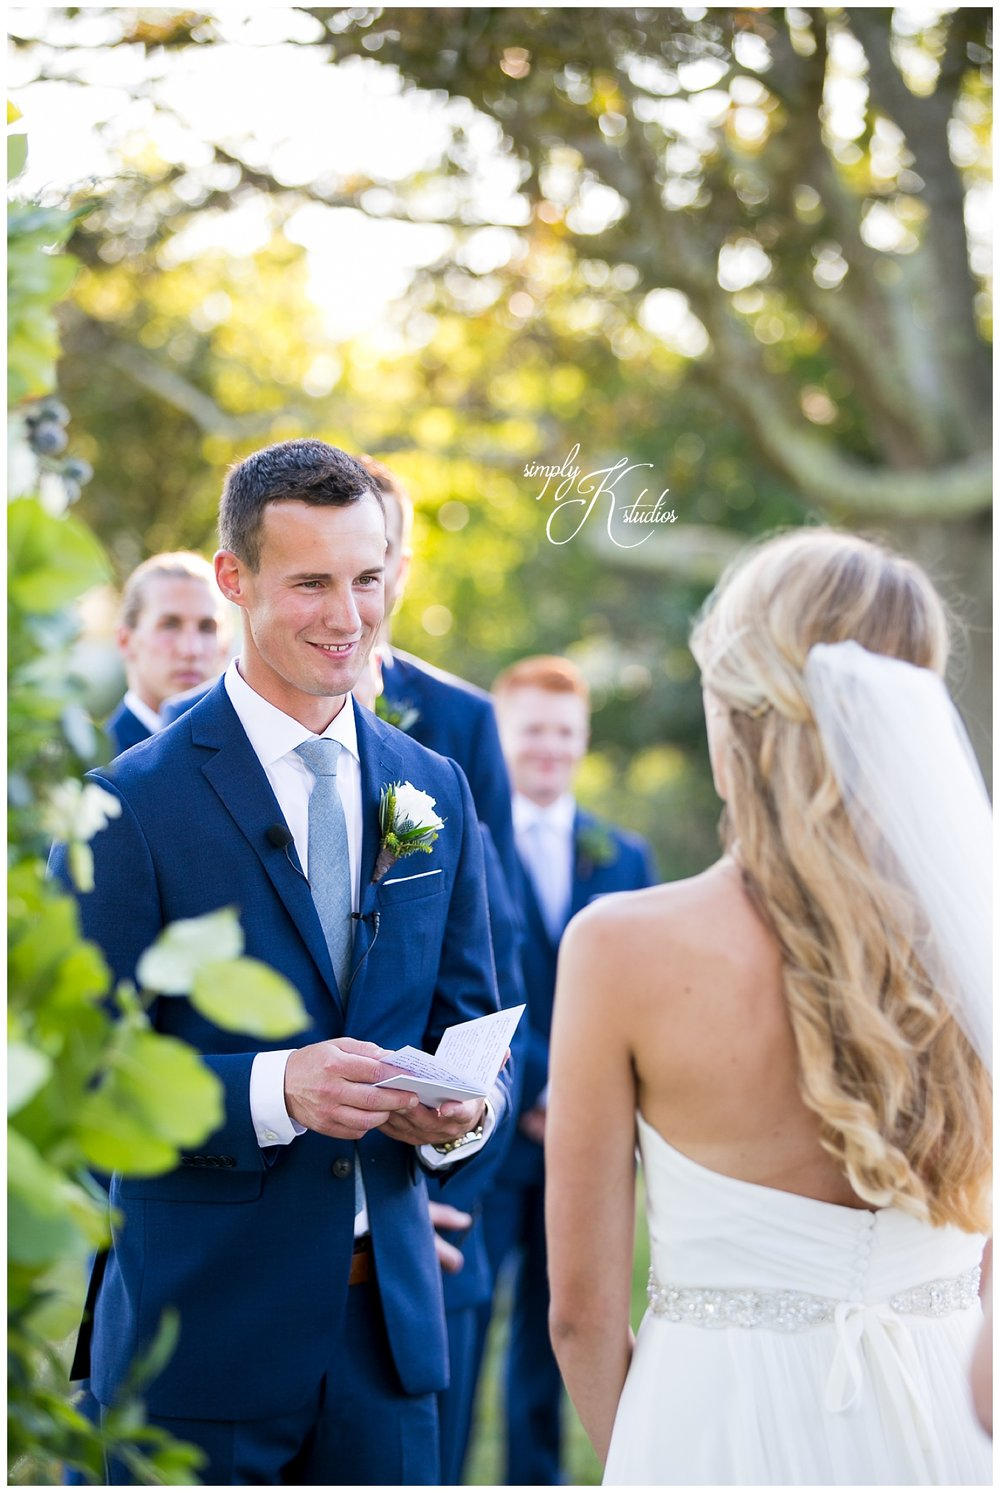 Wedding Ceremony near Guilford CT.jpg